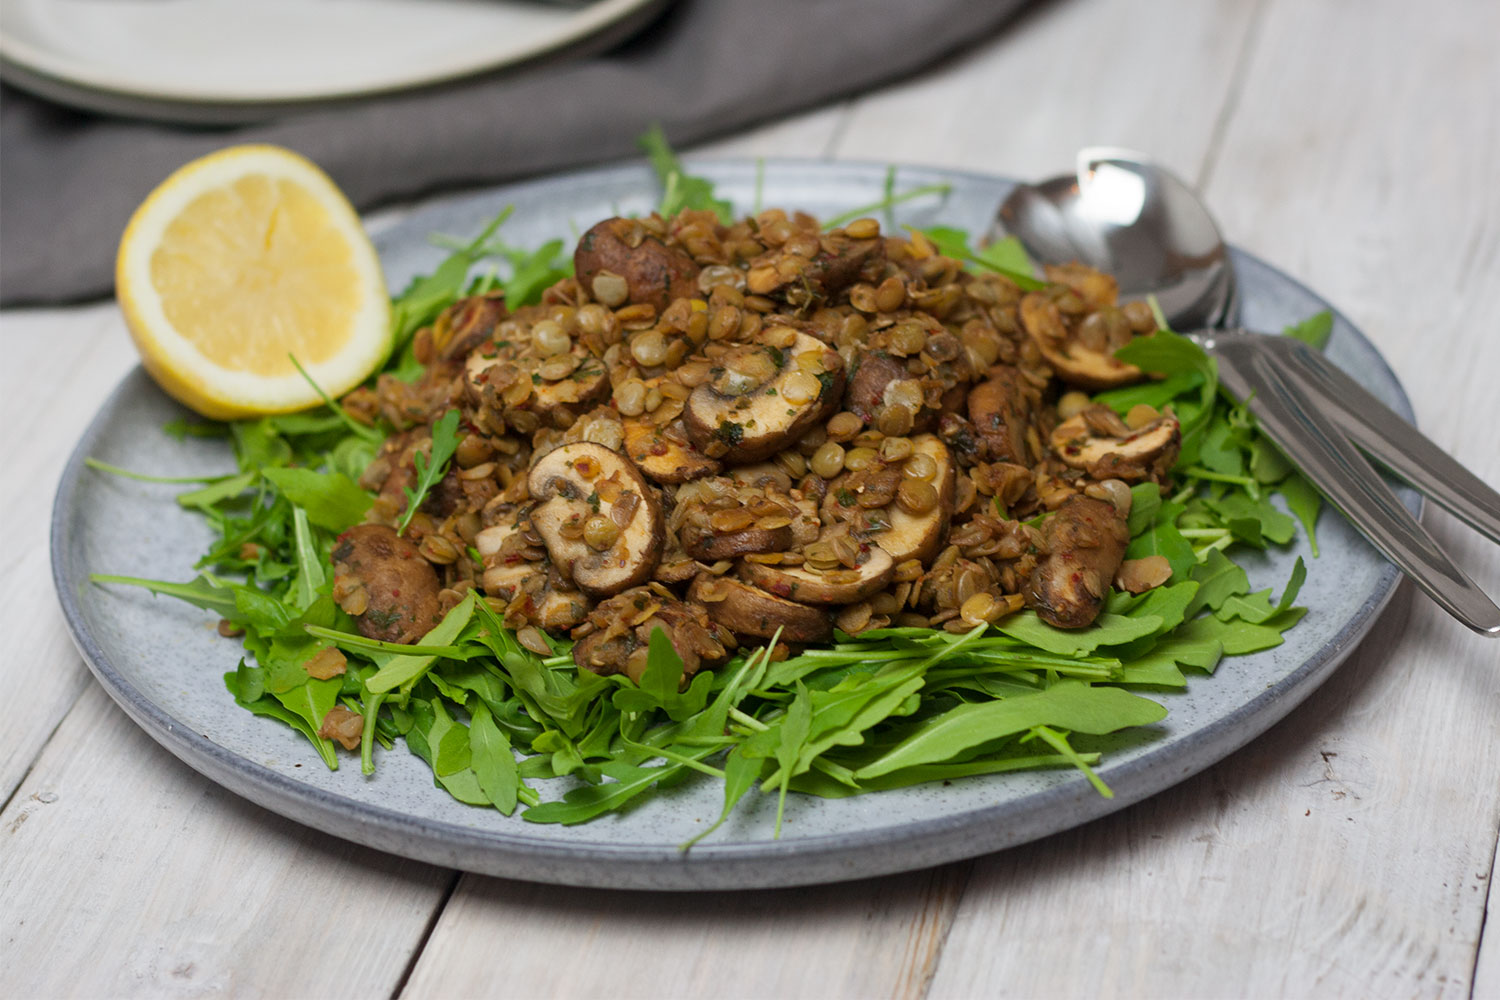 vegan lentil and mushroom salad with rocket | Linsen Pilz Salat auf Rucola